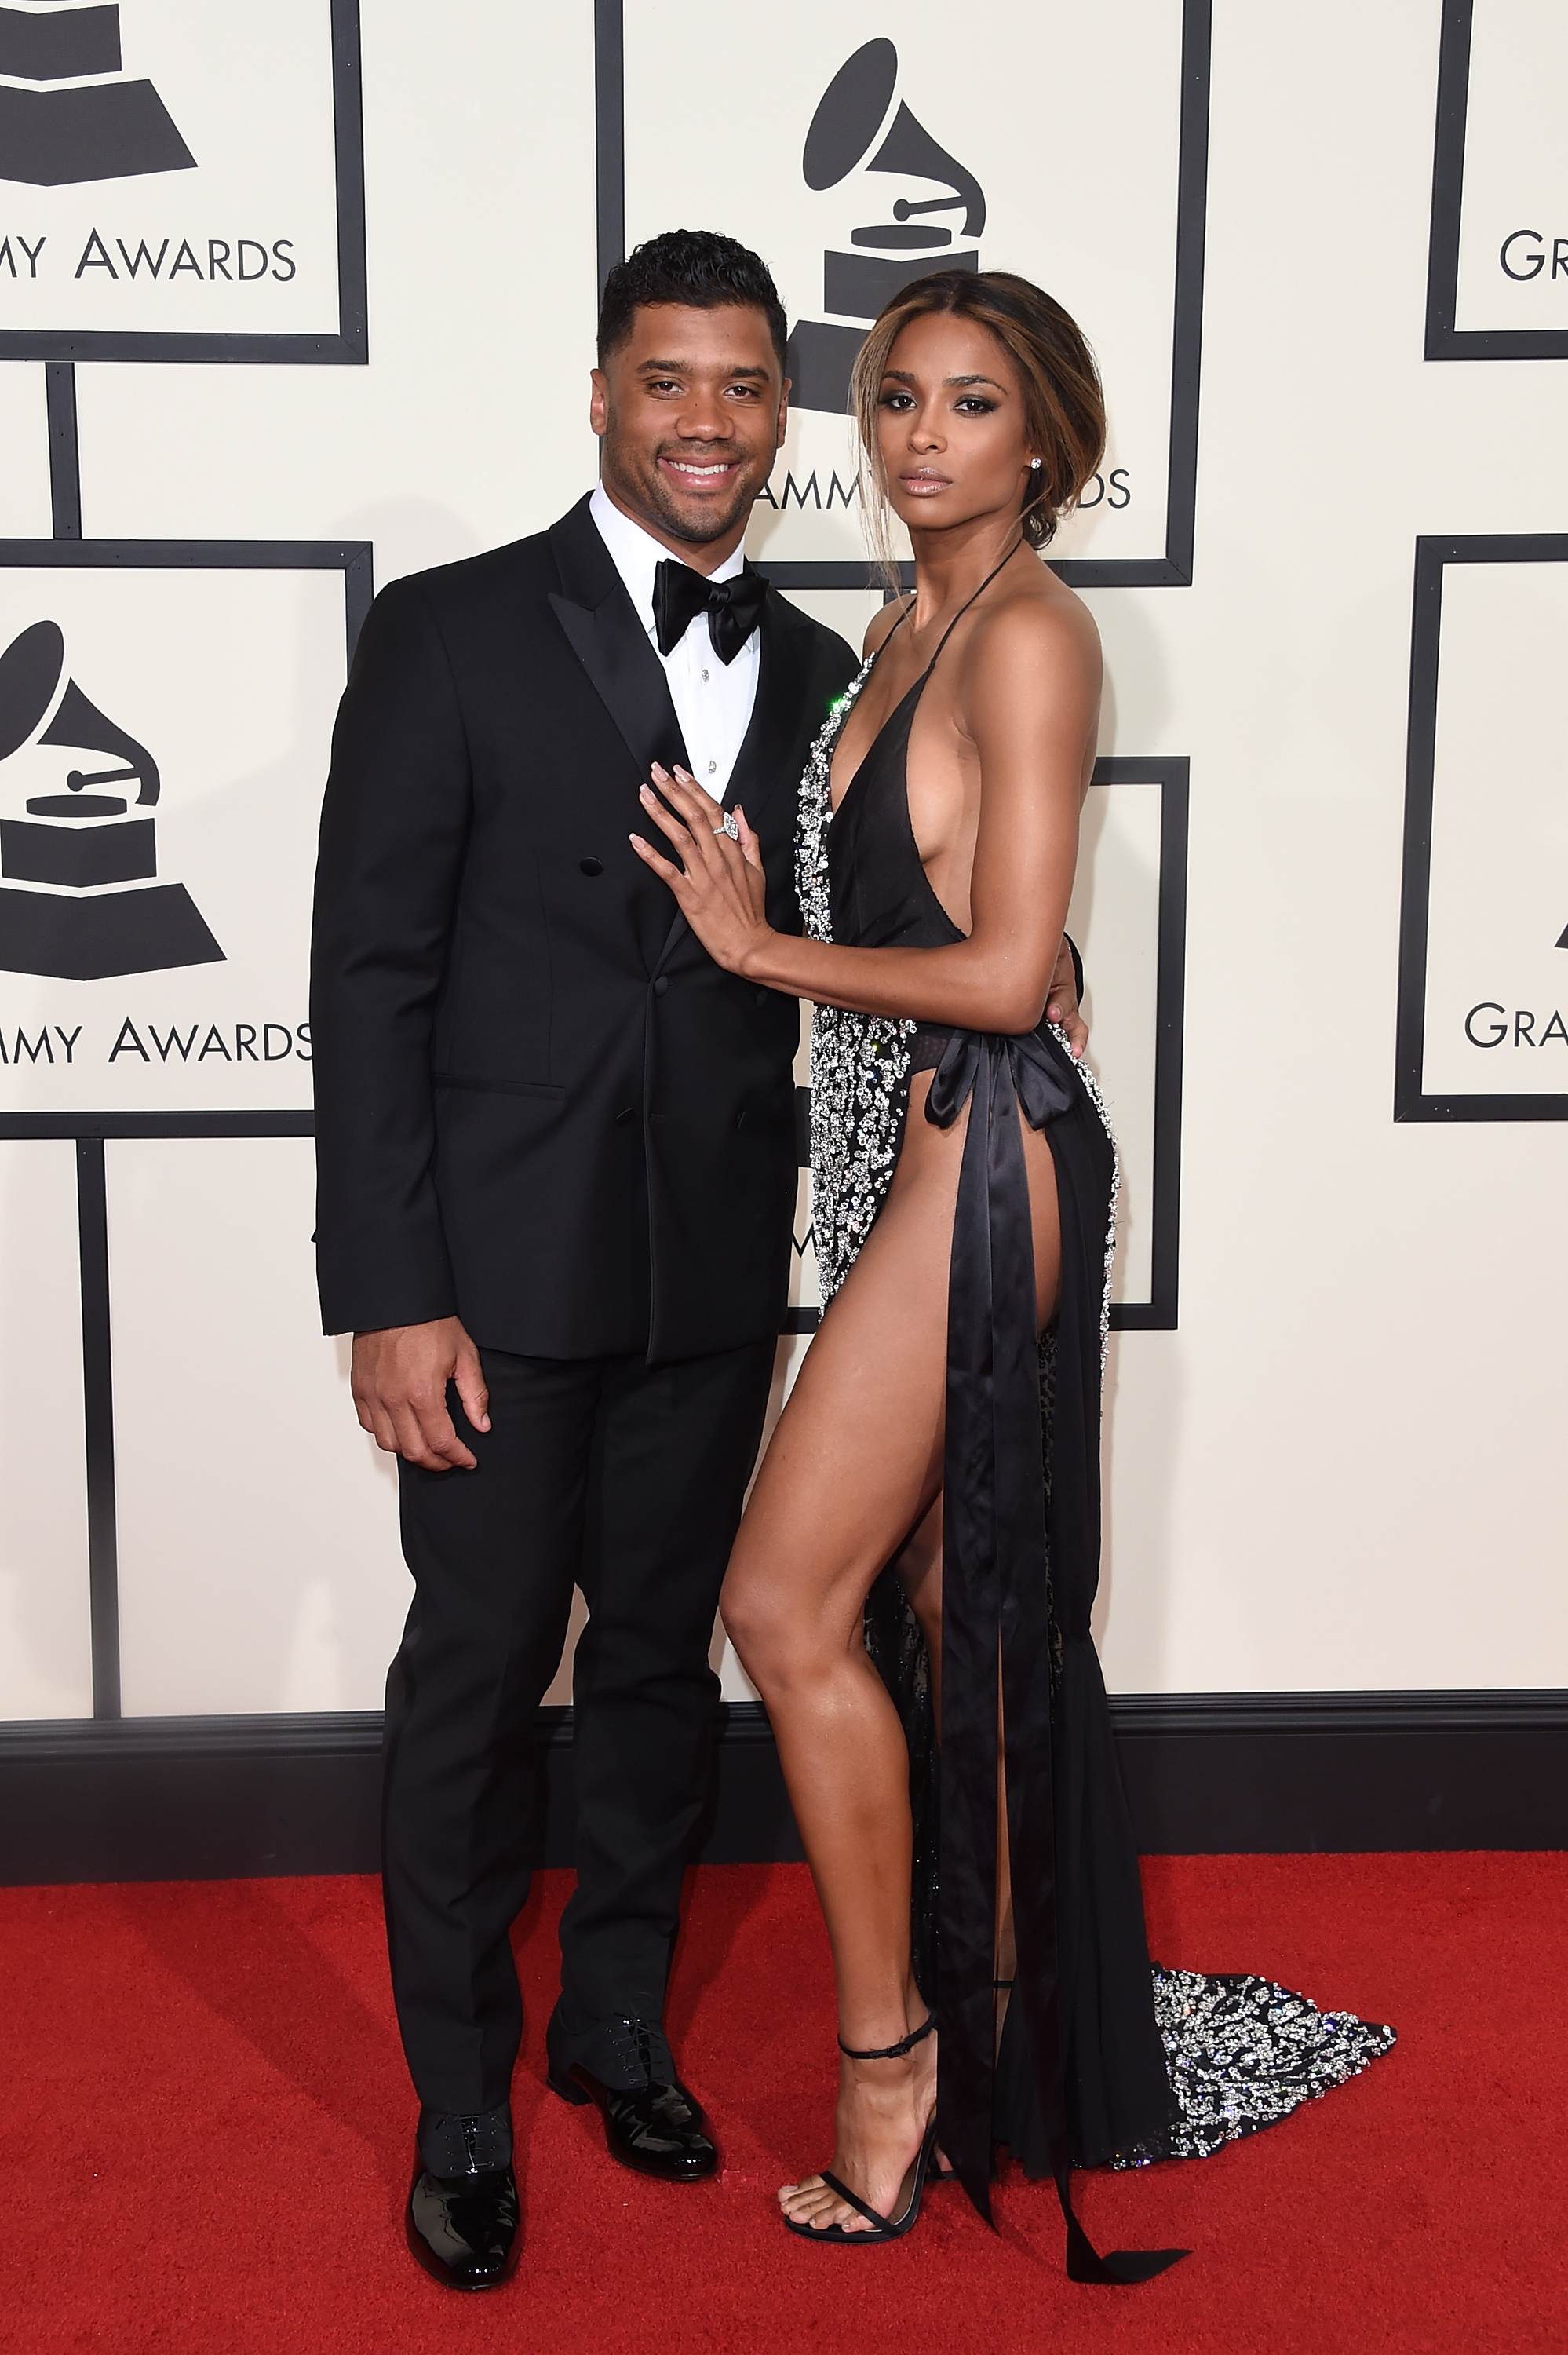 LOS ANGELES, CA - FEBRUARY 15: NFL player Russell Wilson and singer Ciara attend The 58th GRAMMY Awards at Staples Center on February 15, 2016 in Los Angeles, California. (Photo by Jason Merritt/Getty Images for NARAS)